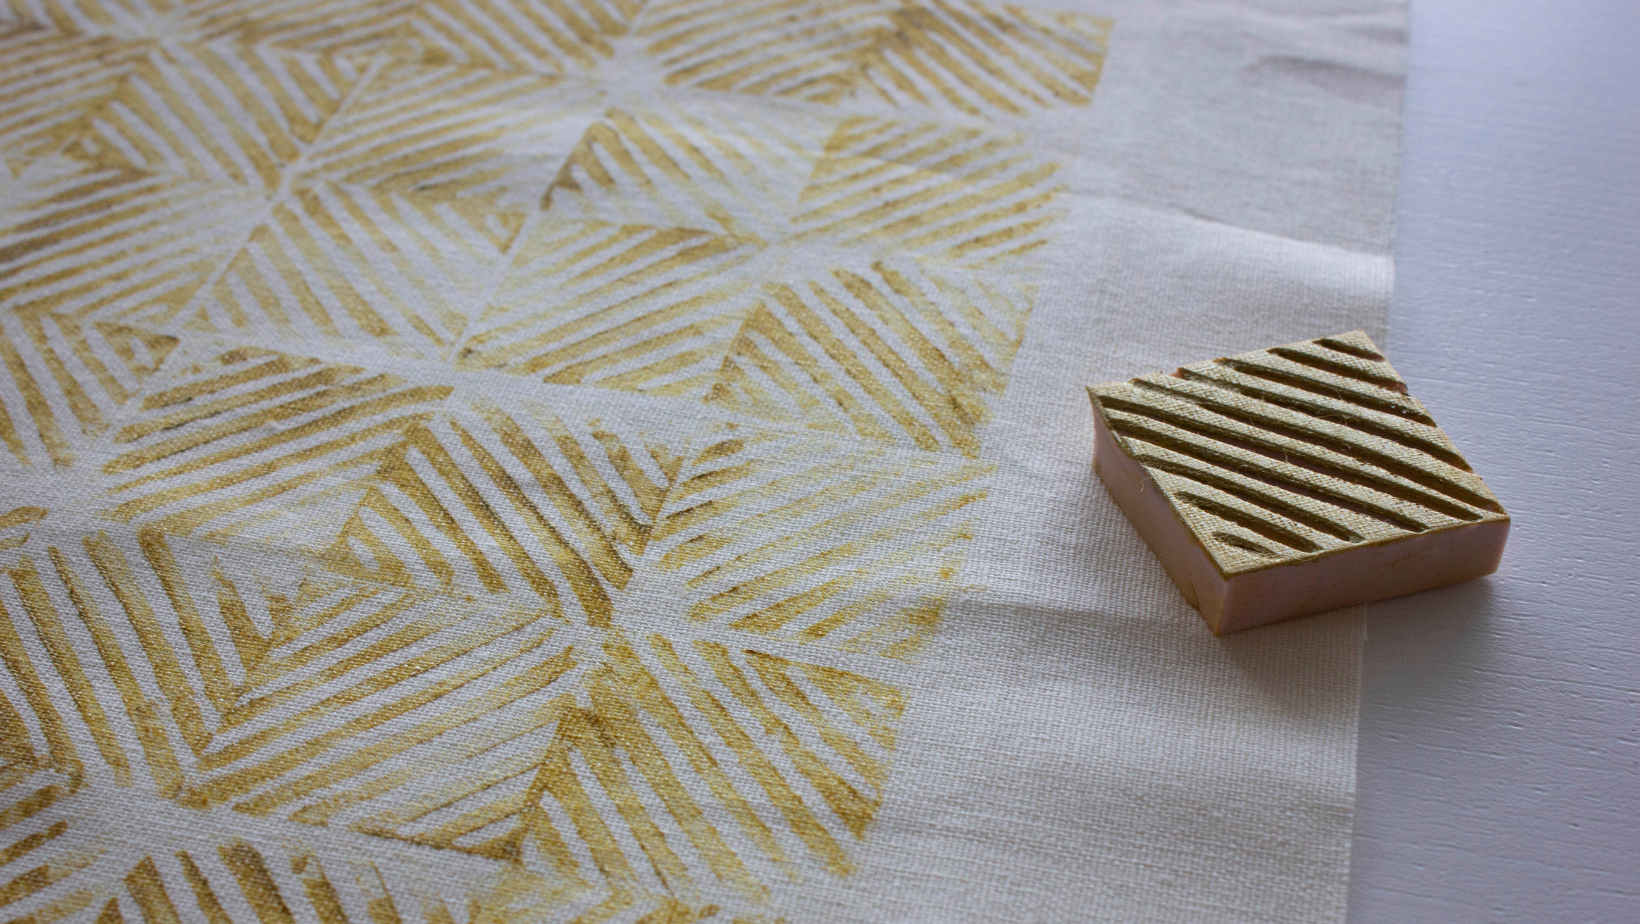 A rubber stamp on a white fabric with a hand printed pattern in yellow ink